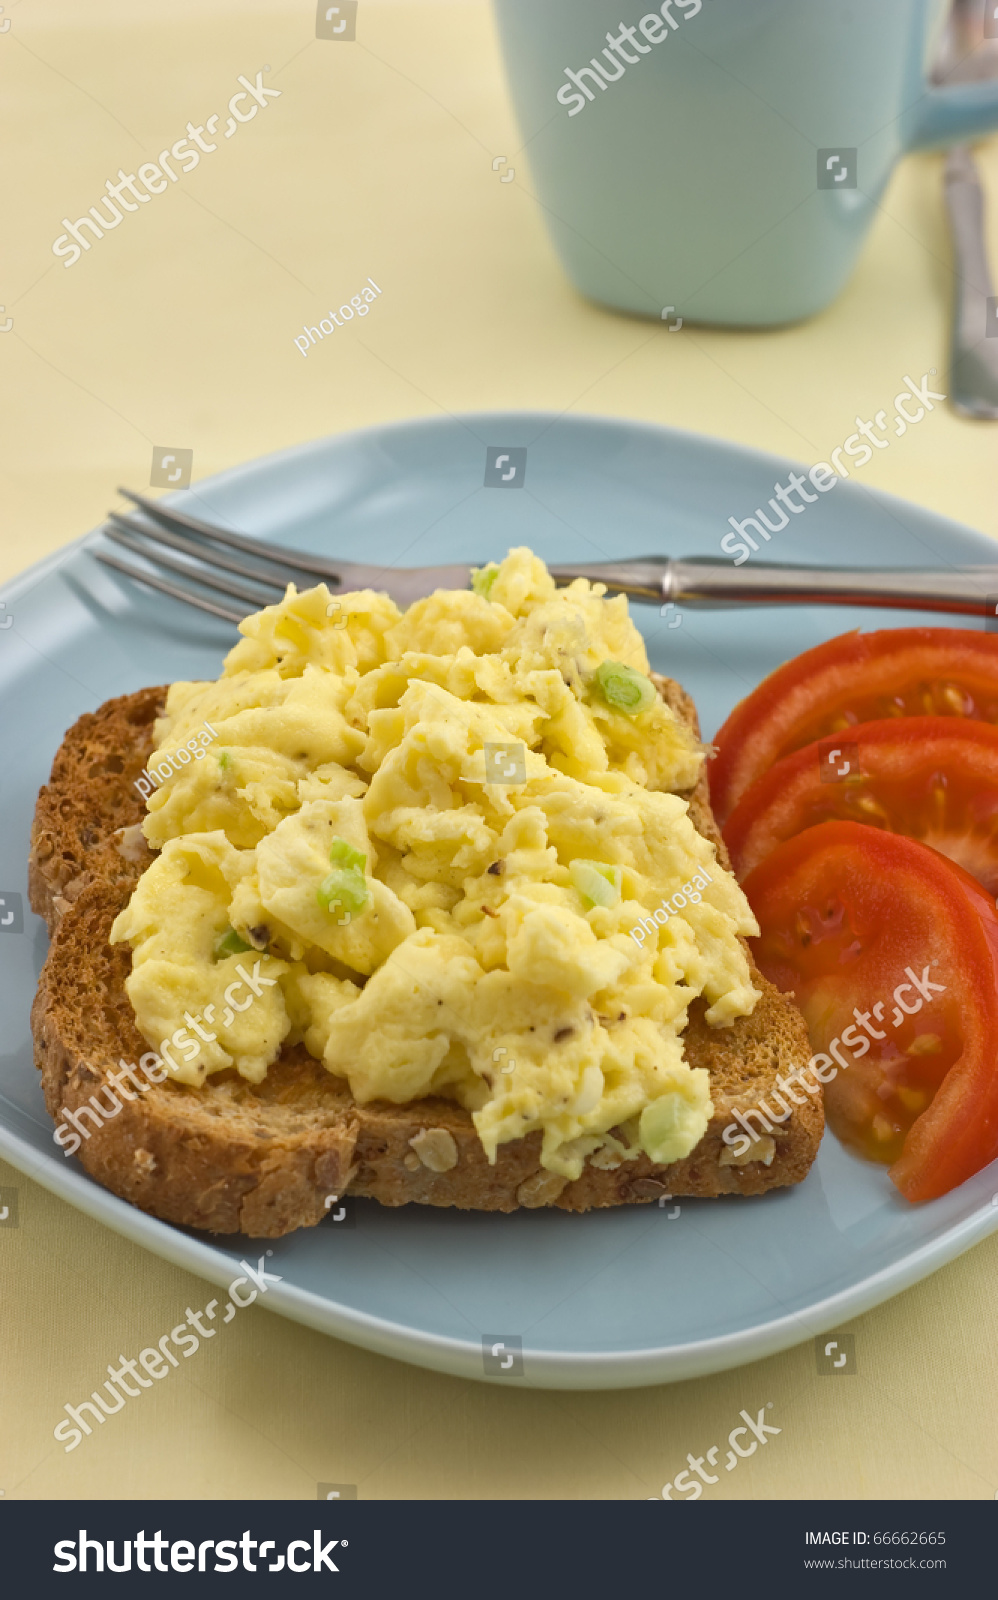 Scrambled Eggs On Whole Grain Toast With Tomato Slices In Vertical Format